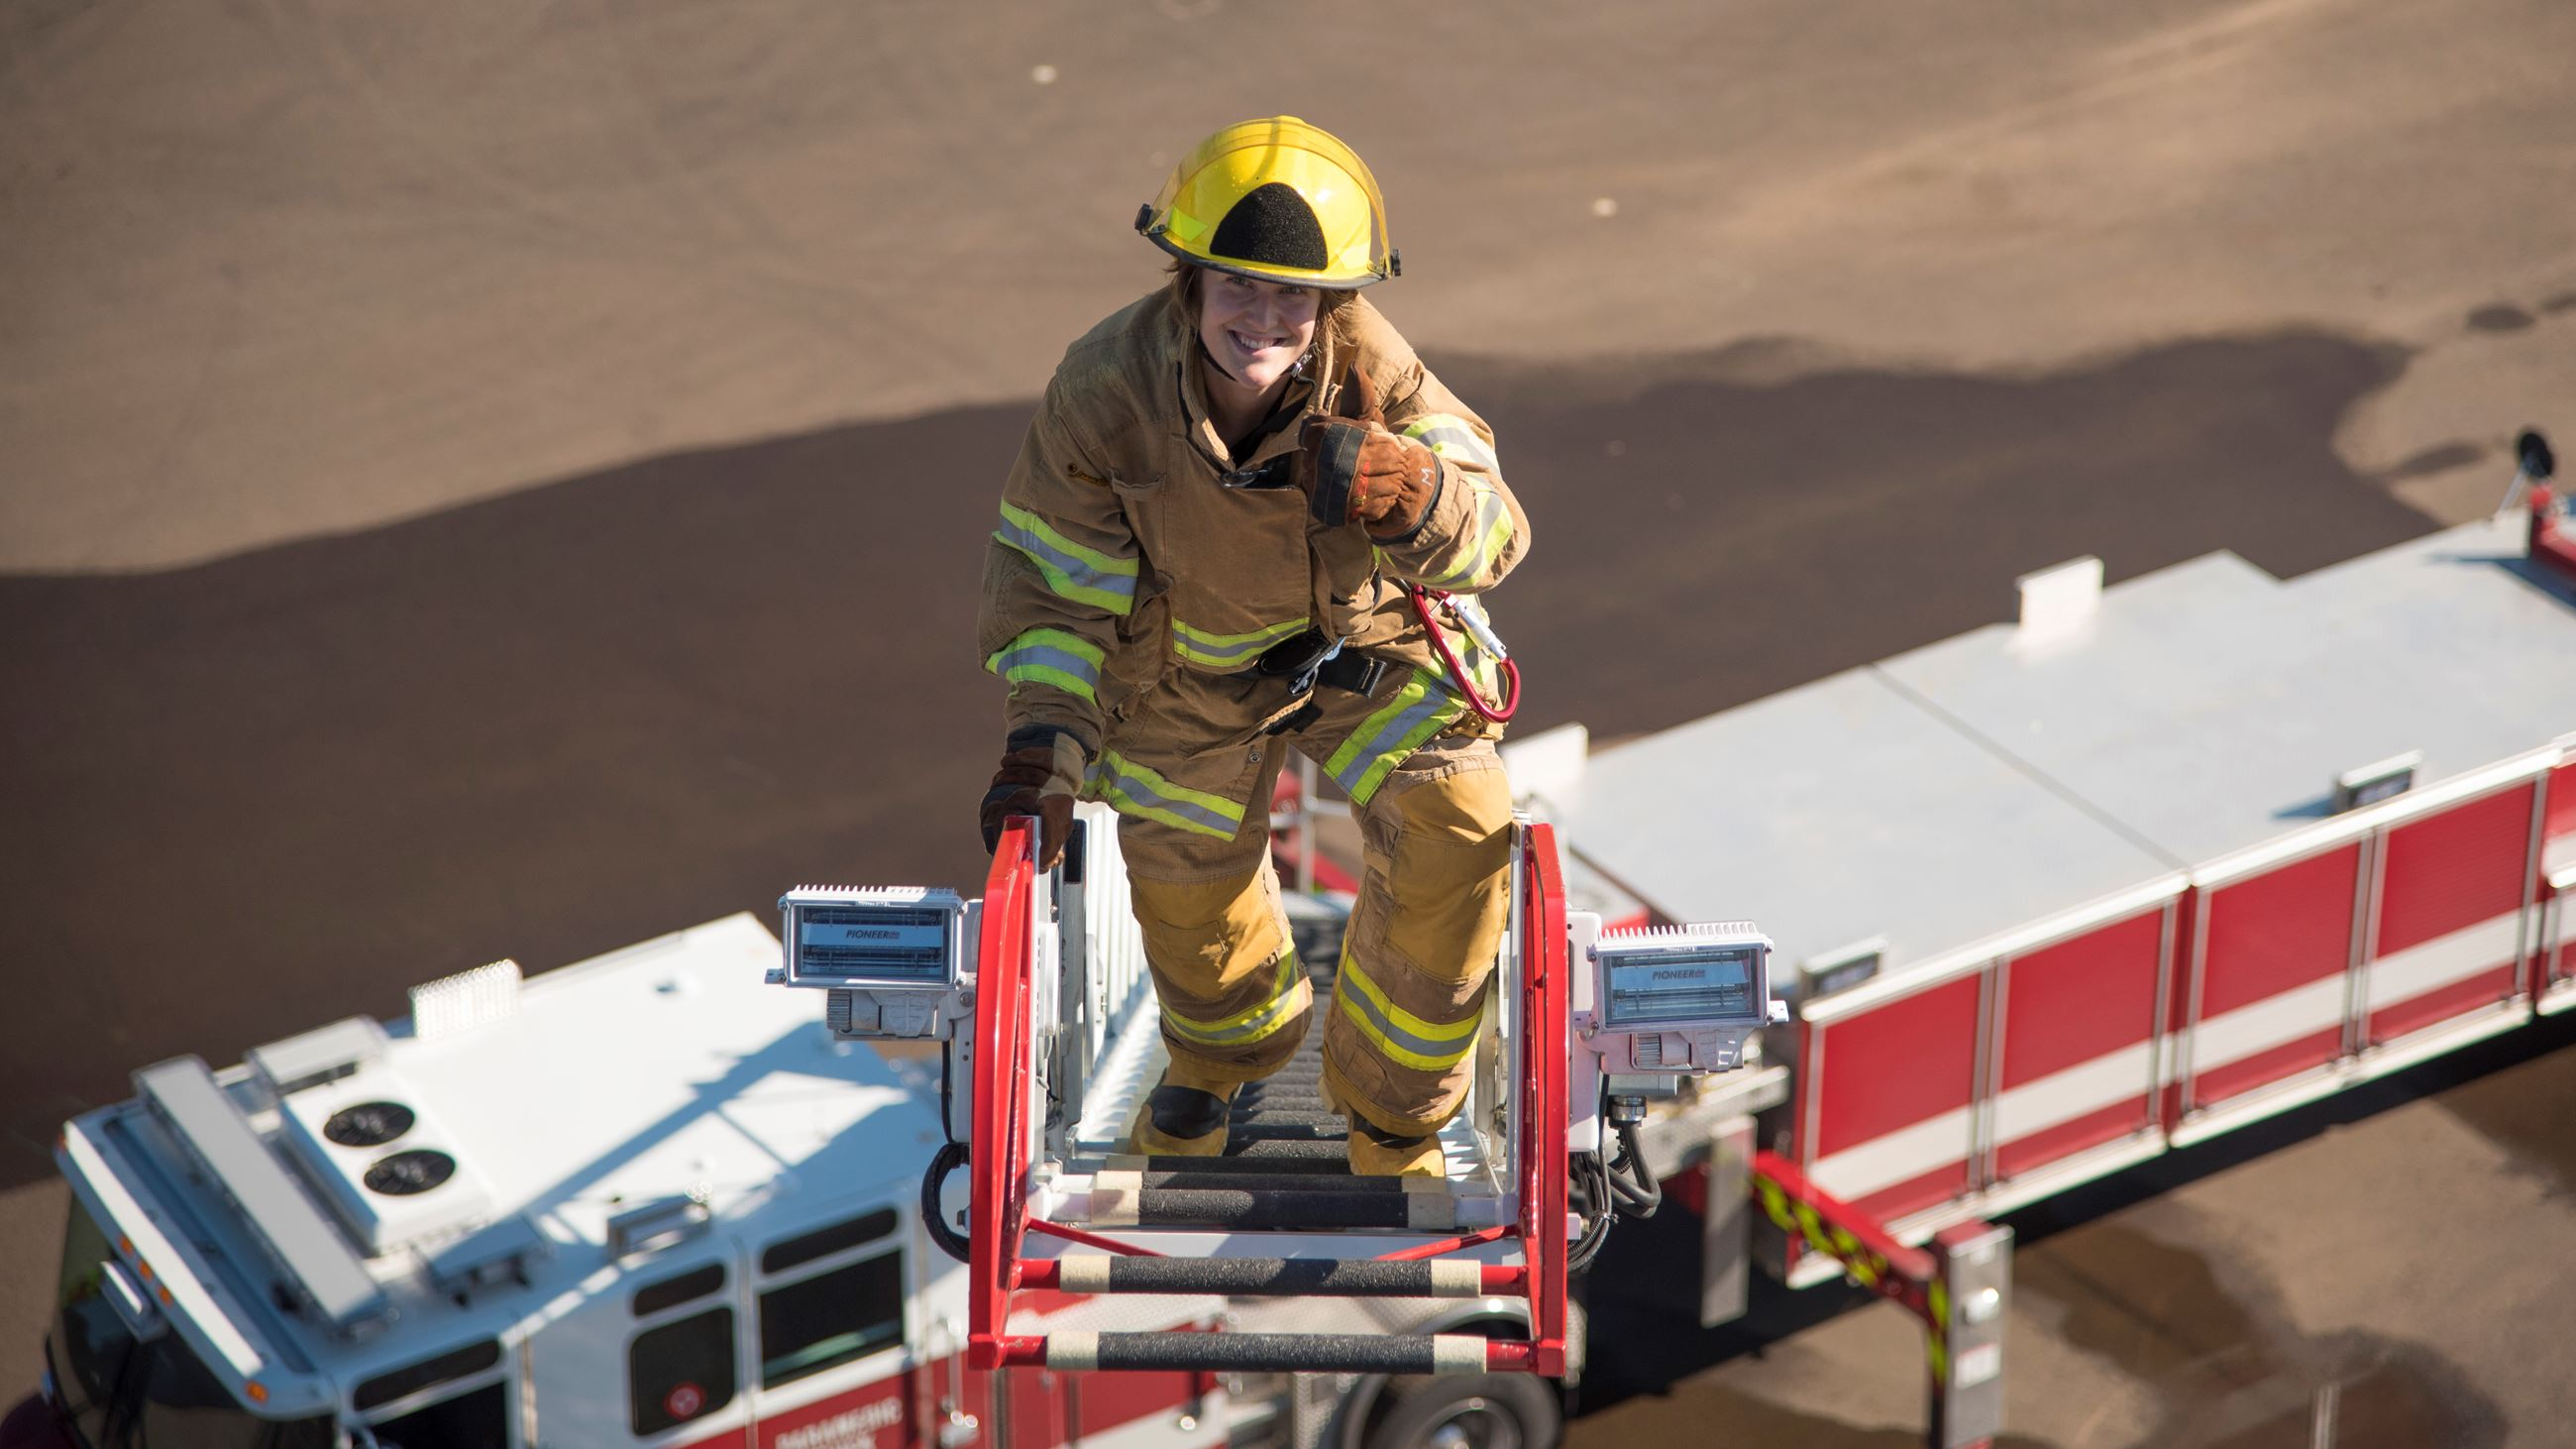 Career Day participant climbing up ladder on truck